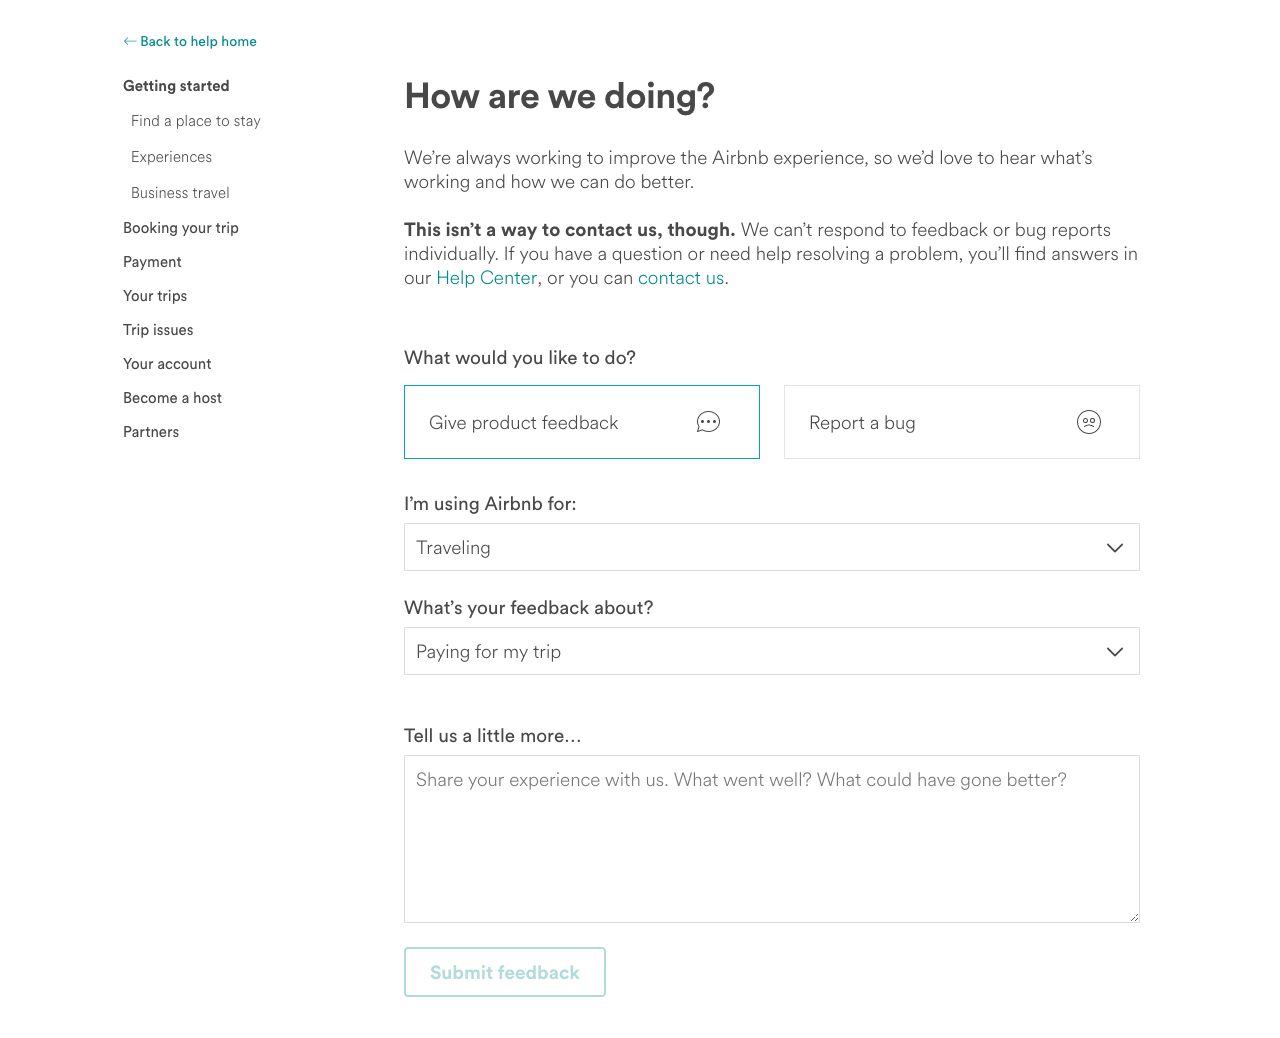 airbnb-customer-satisfaction-survey-1